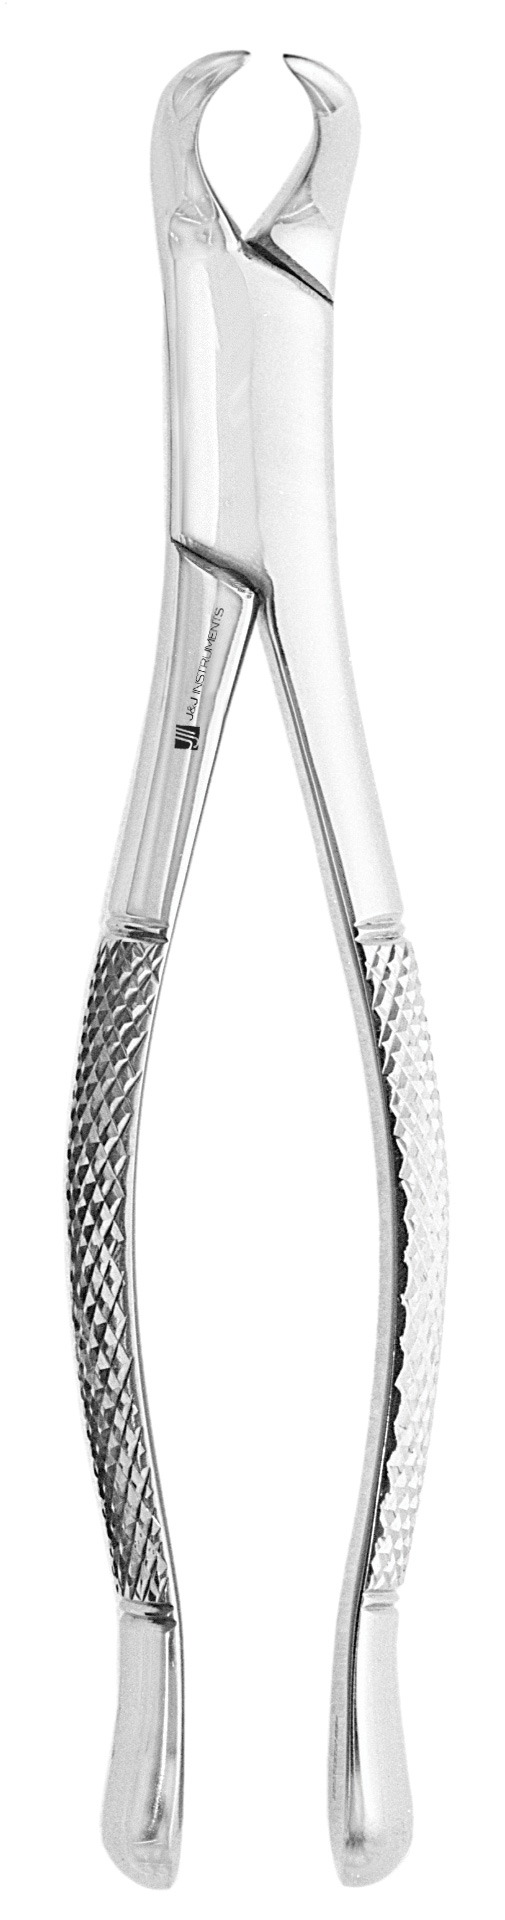 Pomee - Extracting Forcep